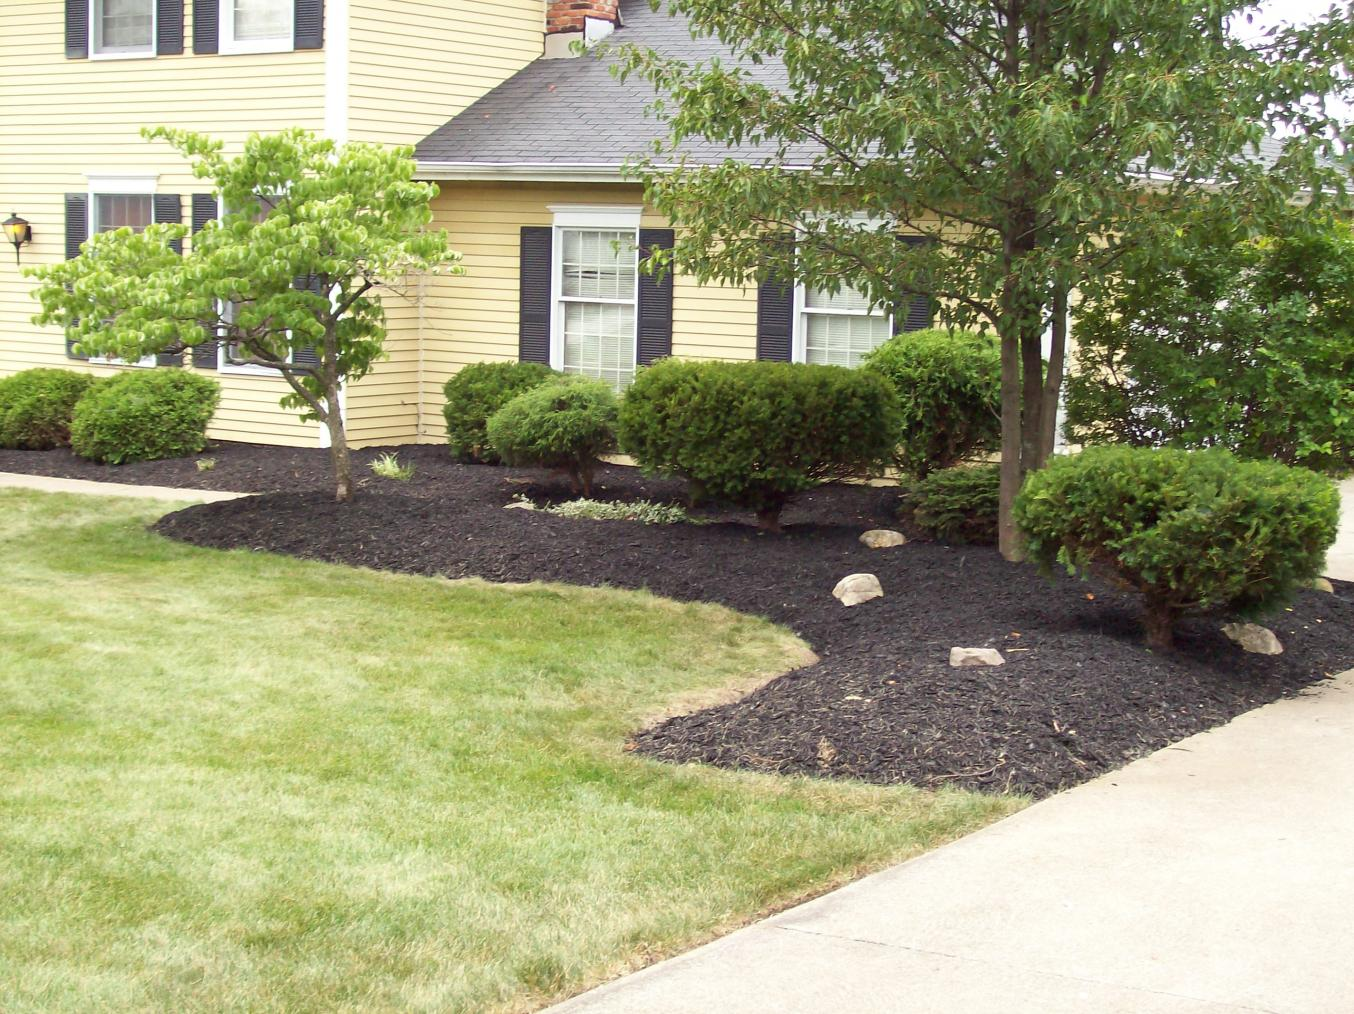 Landscaping Ideas For Front Yard Landscaping Ideas Front Yard Youtube